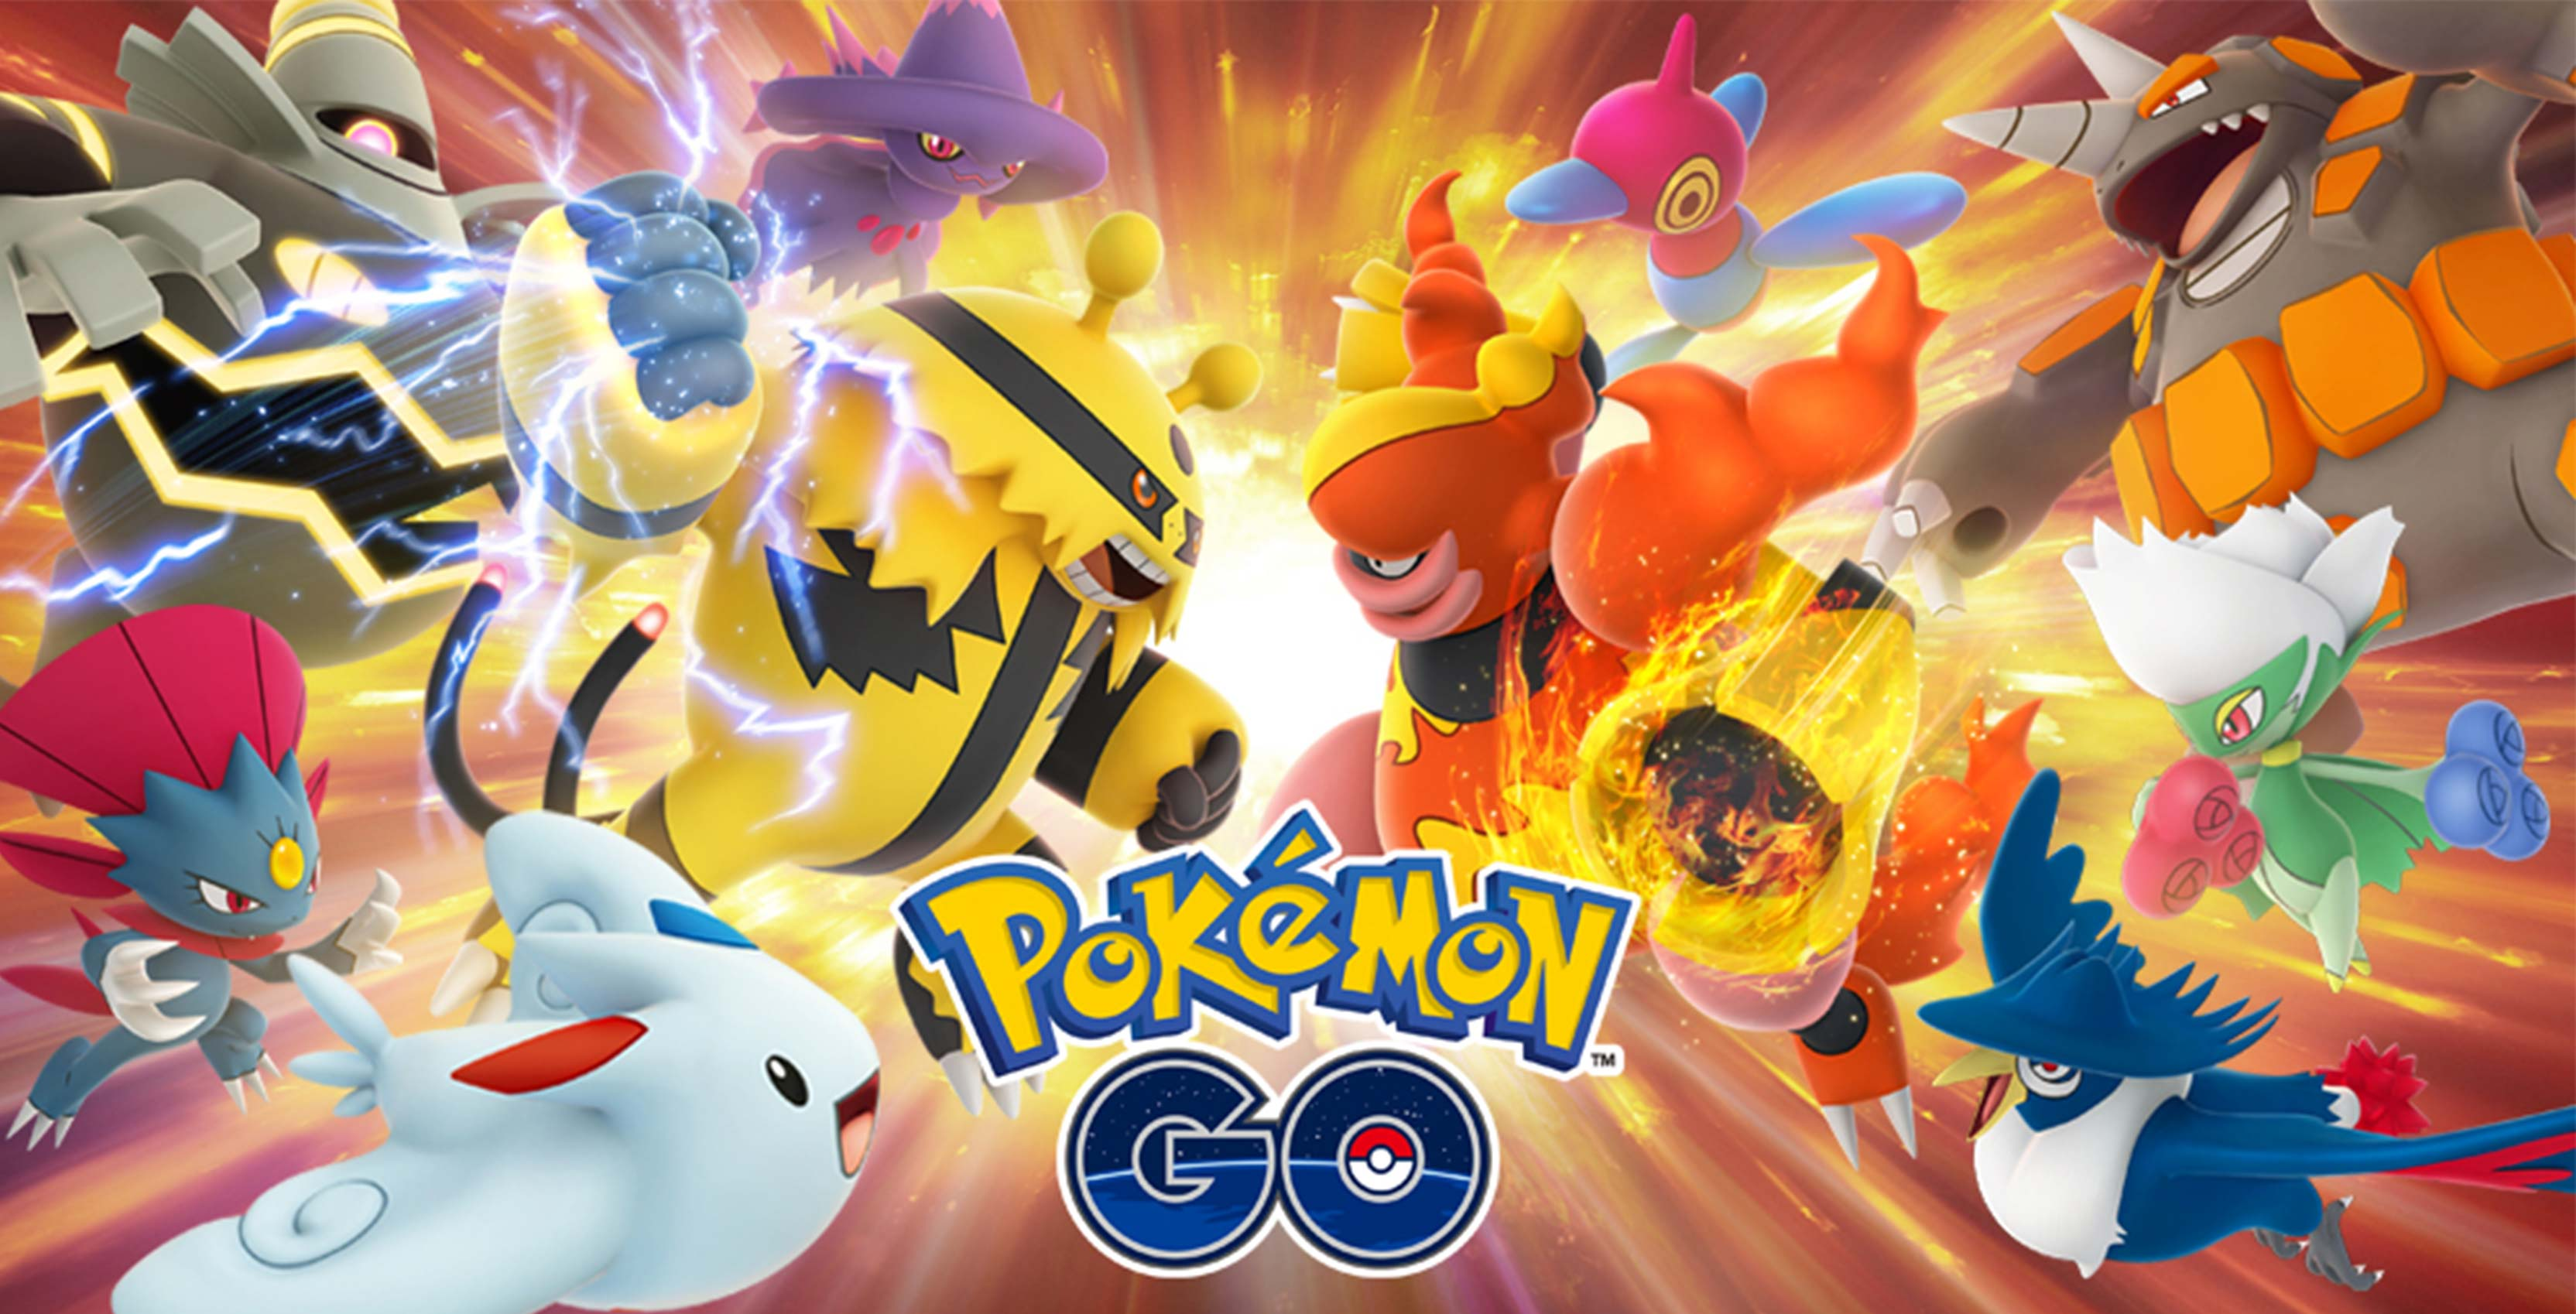 Pokémon GO Game Reveals Trainer Battle System